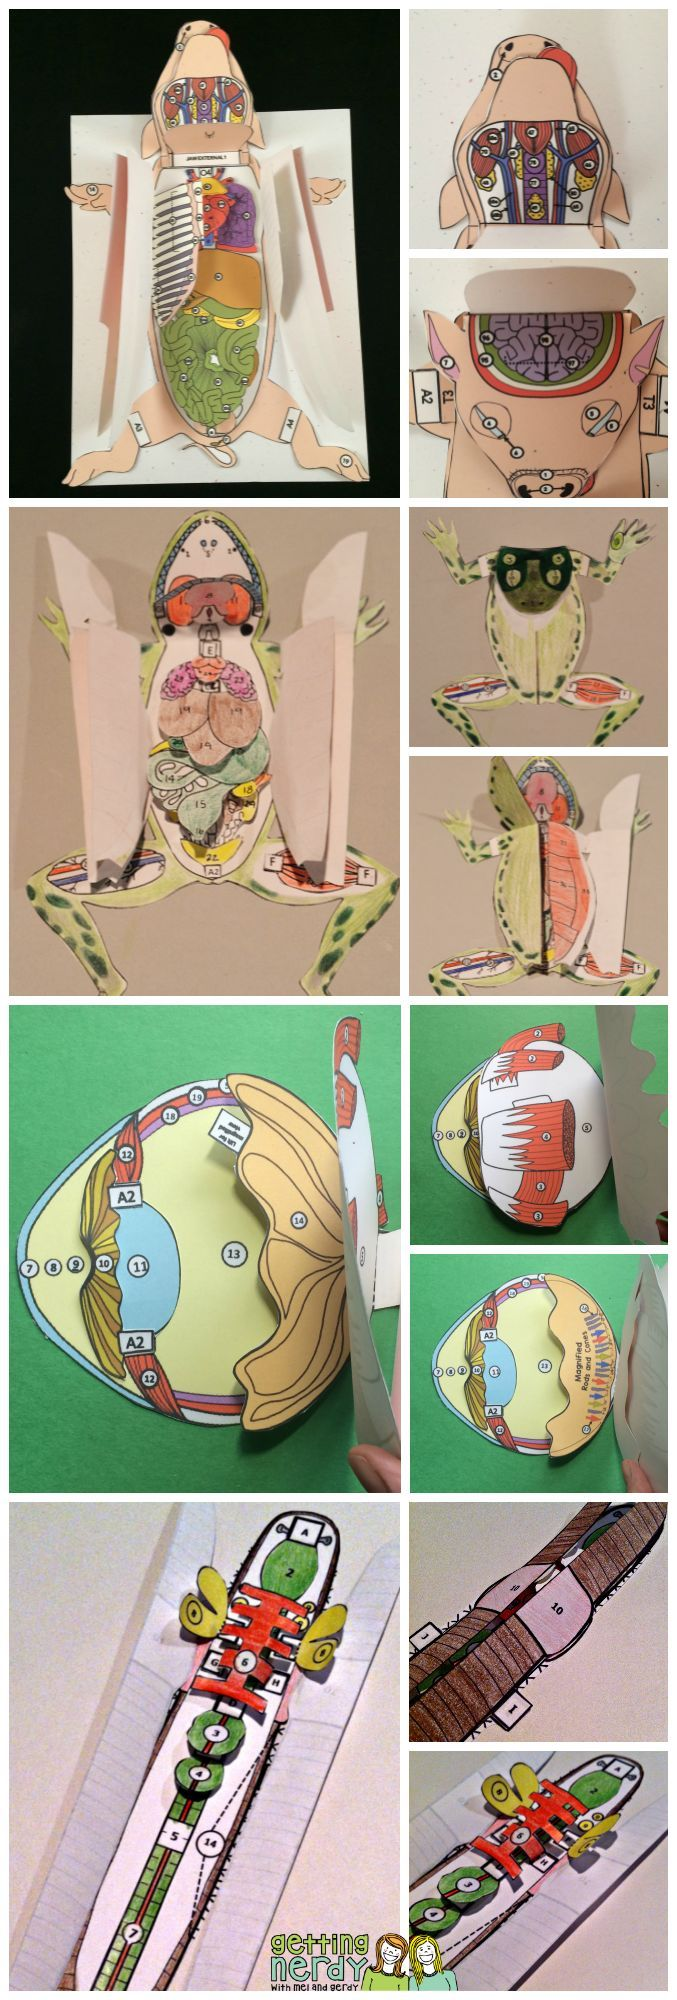 Dissection models for life science and biology - fetal pig, grass frog, sheep or cow eye, earthworm, and more! Read to find out why they're perfect for your classroom!